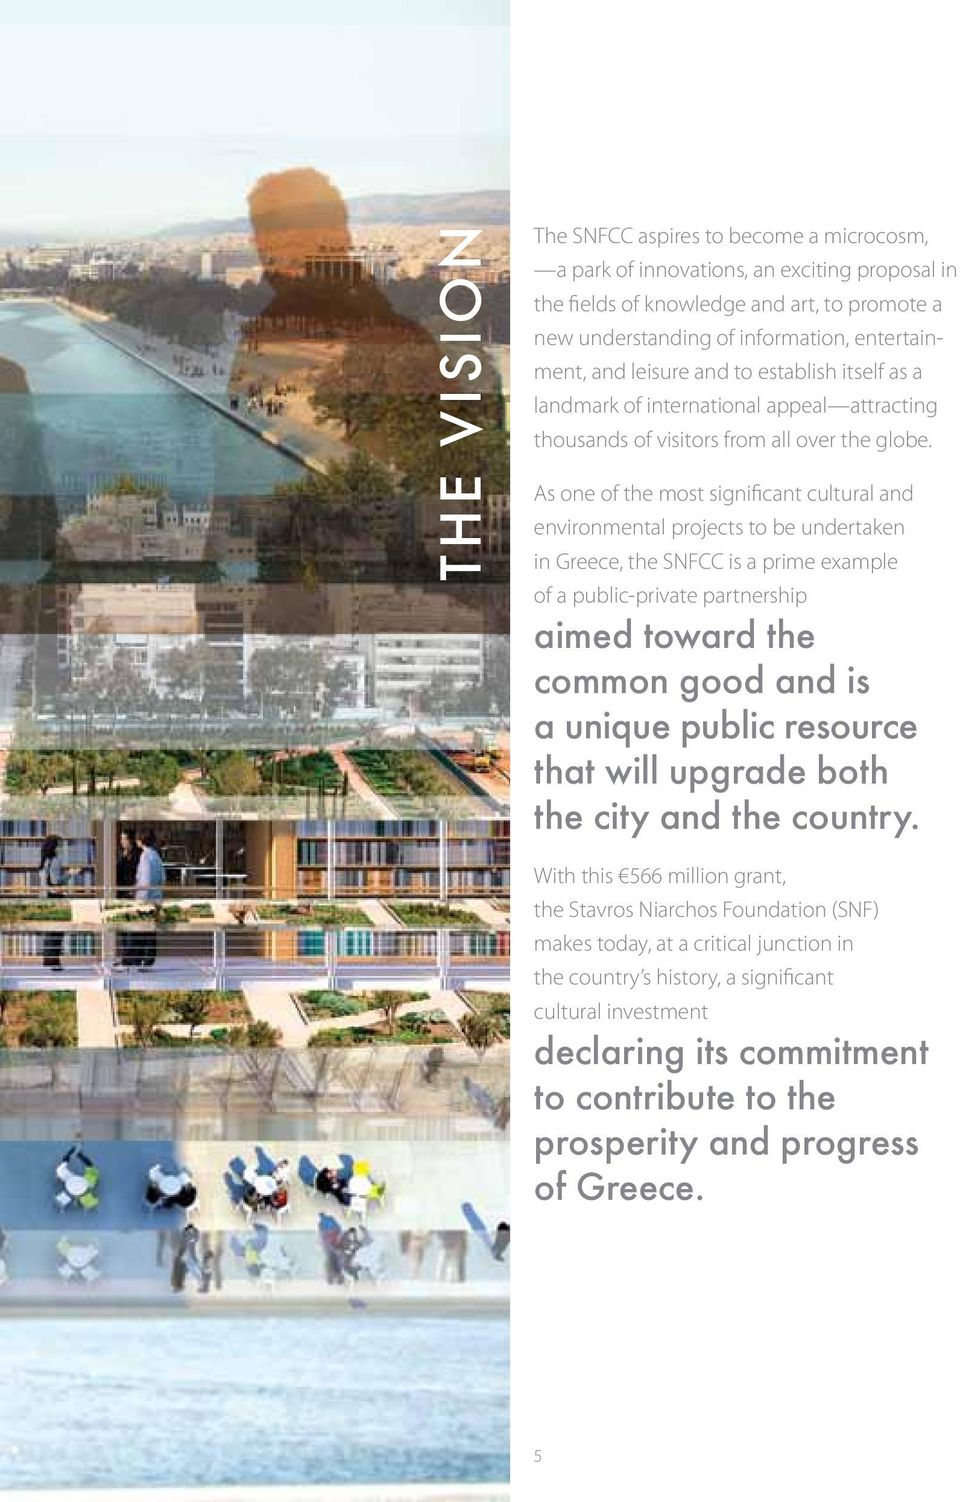 As one of the most significant cultural and environmental projects to be undertaken in Greece, the SNFCC is a prime example of a public-private partnership aimed toward the common good and is a